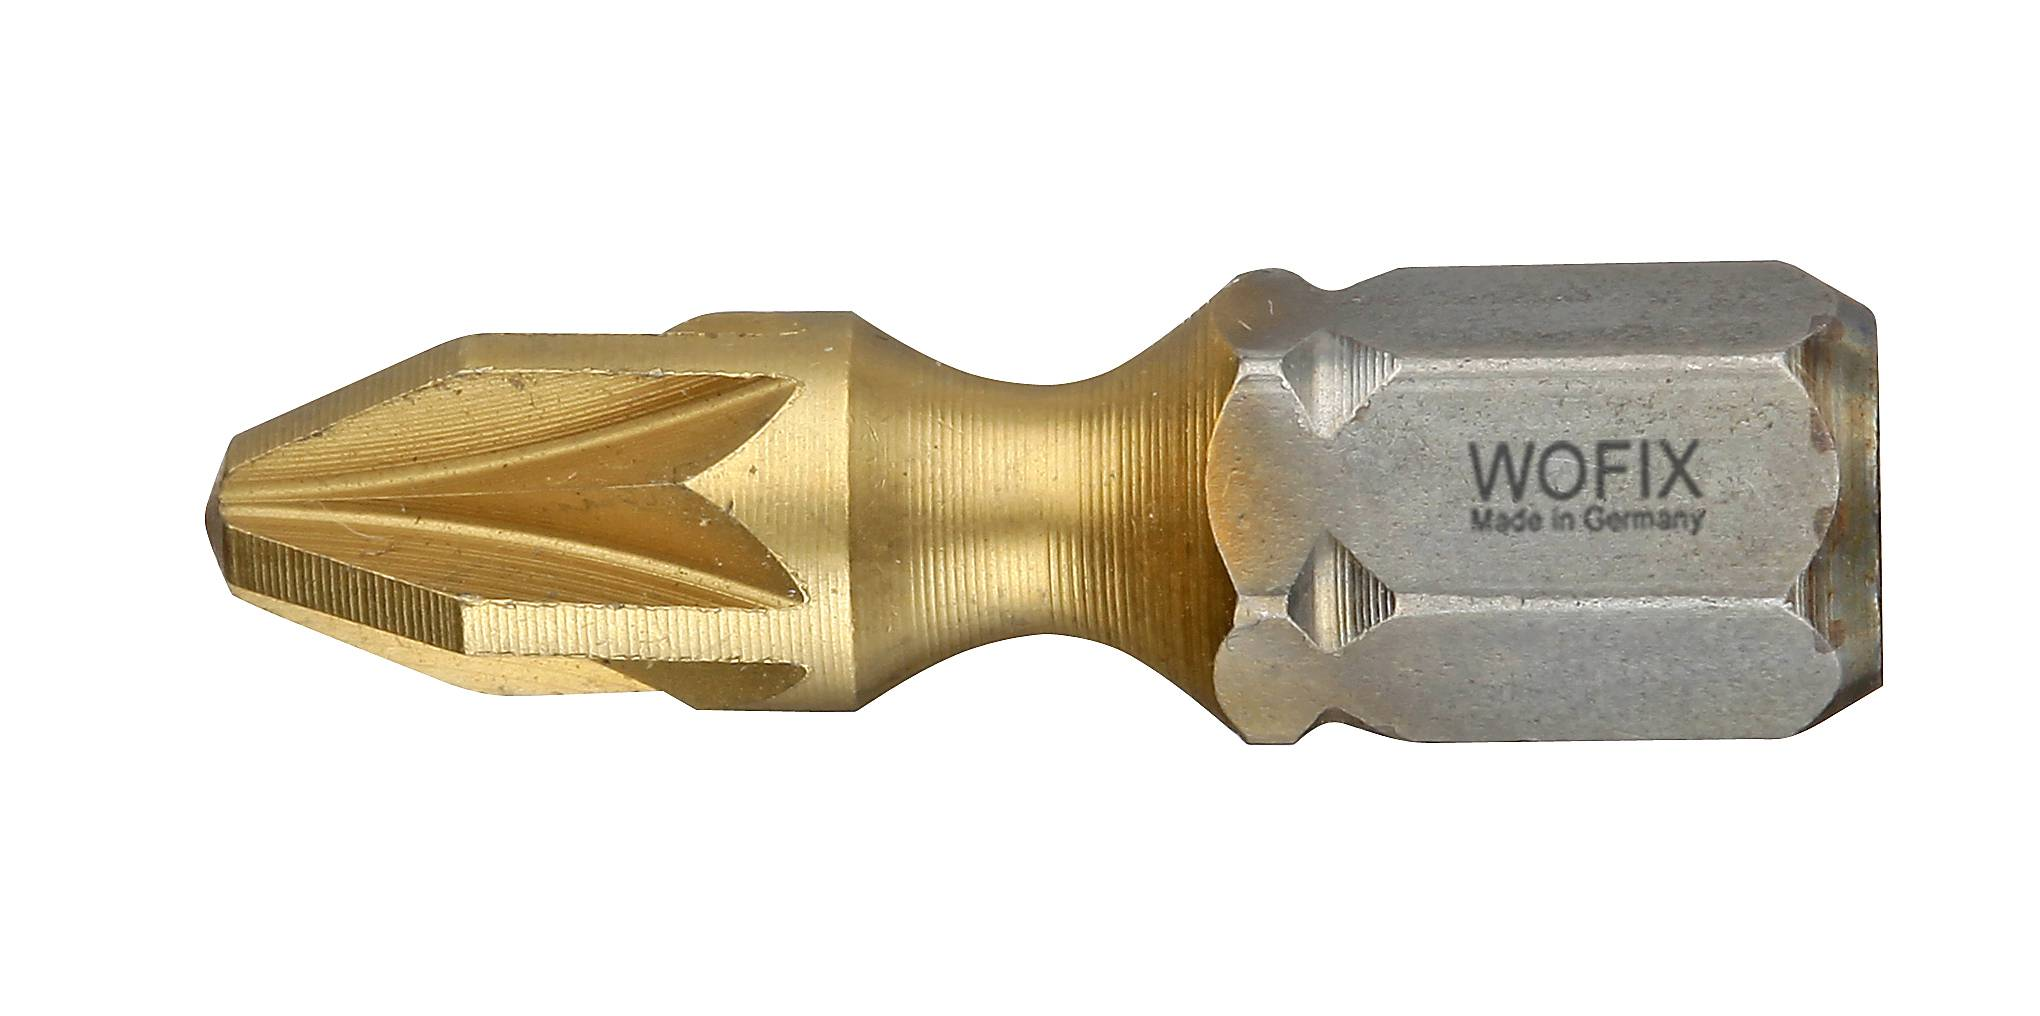 Wofix 7337225 Titanium Torsion Pozidrive bit - PZ2 x 25 mm